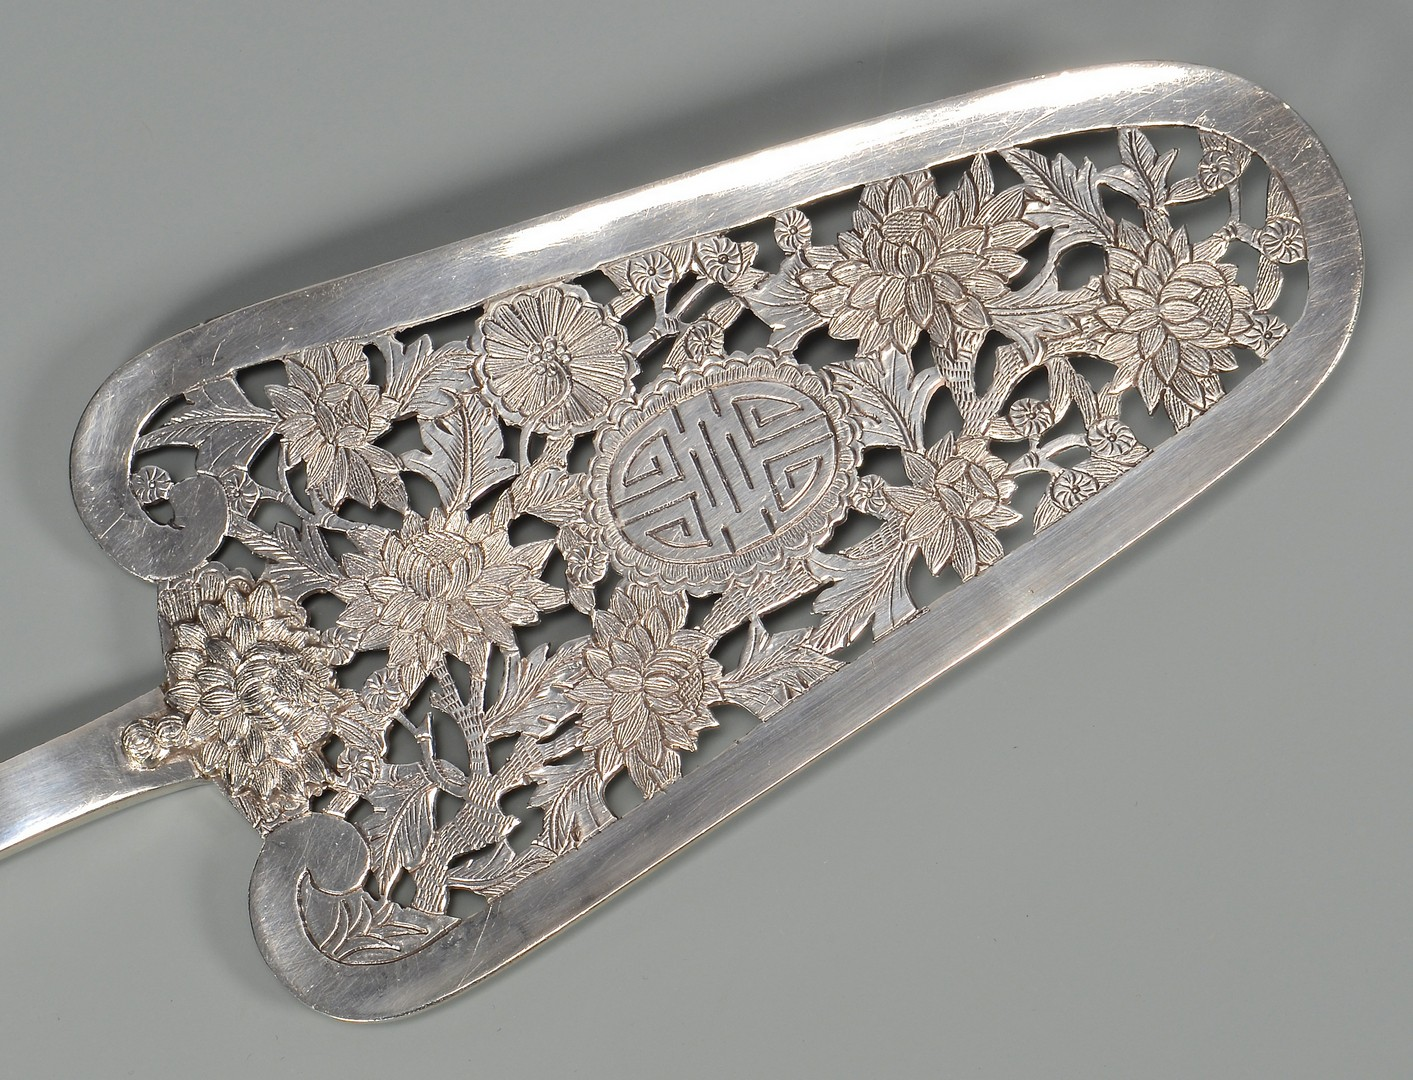 Lot 5: Chinese Export Silver Pastry Server